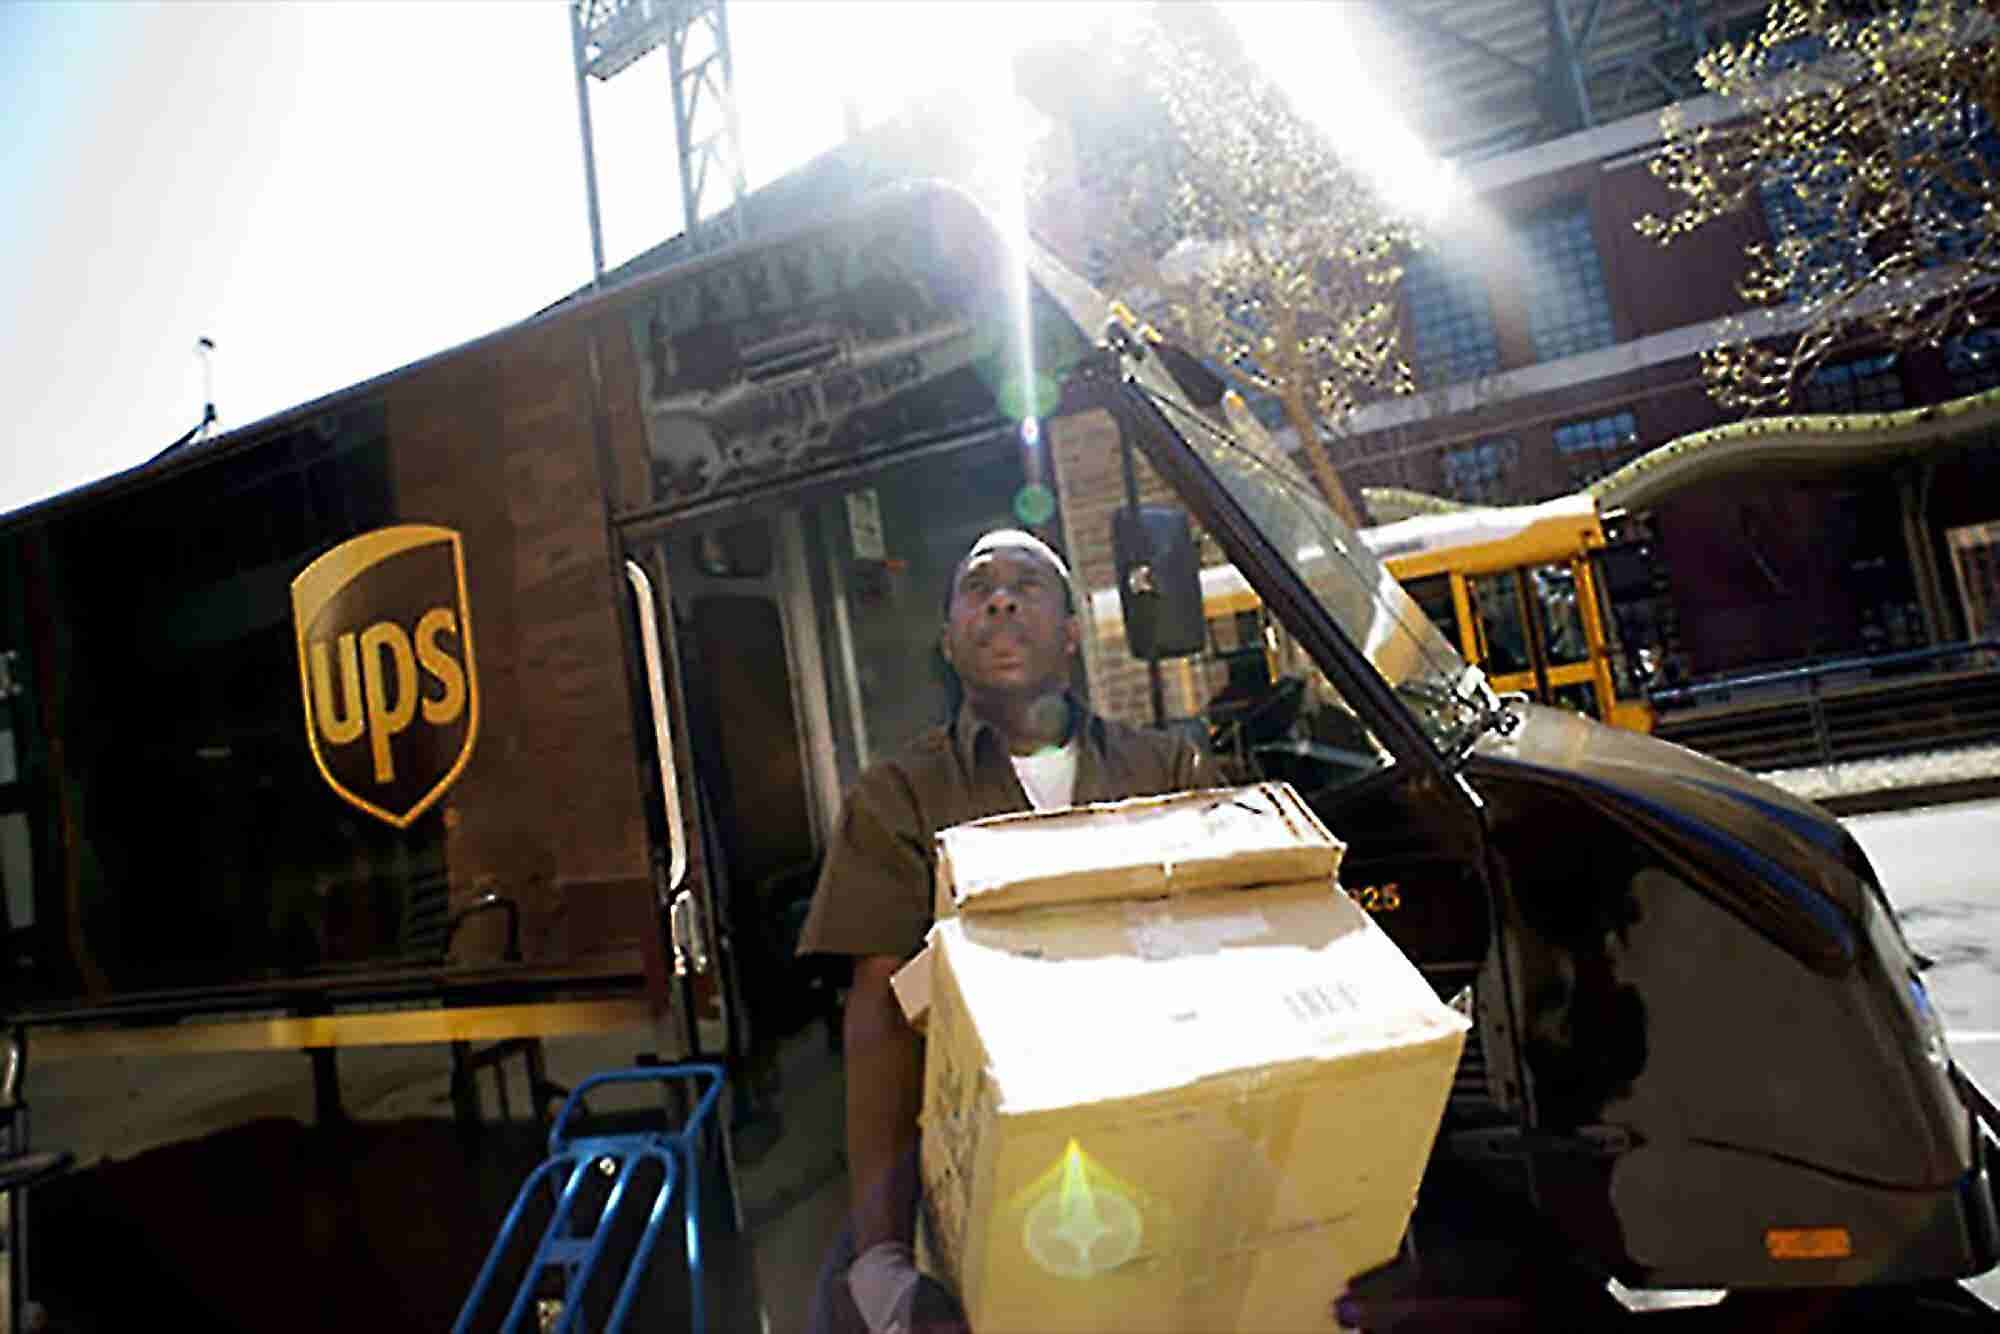 UPS Cuts Guidance, Troubling Sign for U.S. Economy